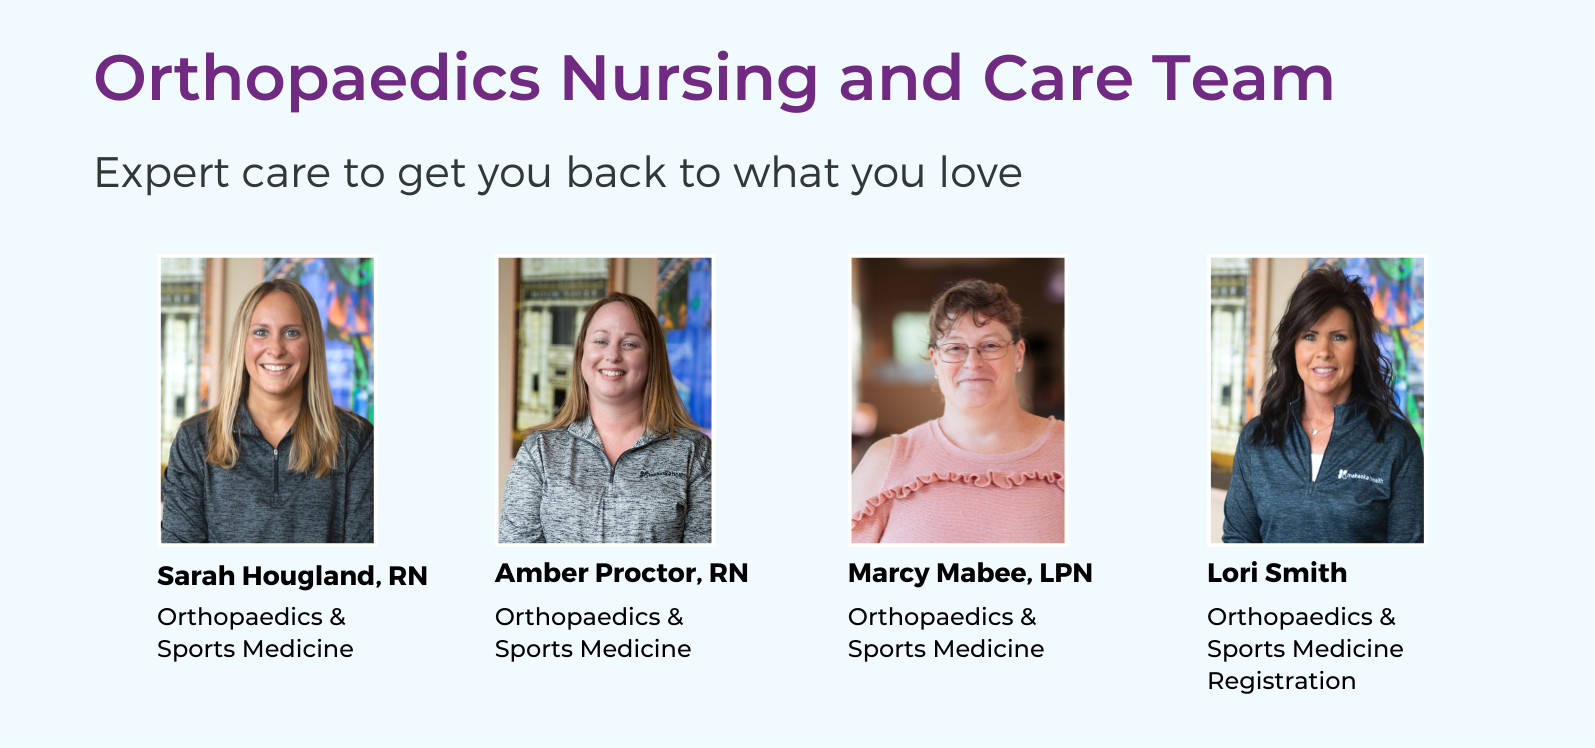 Family Practice & Primary Care 37